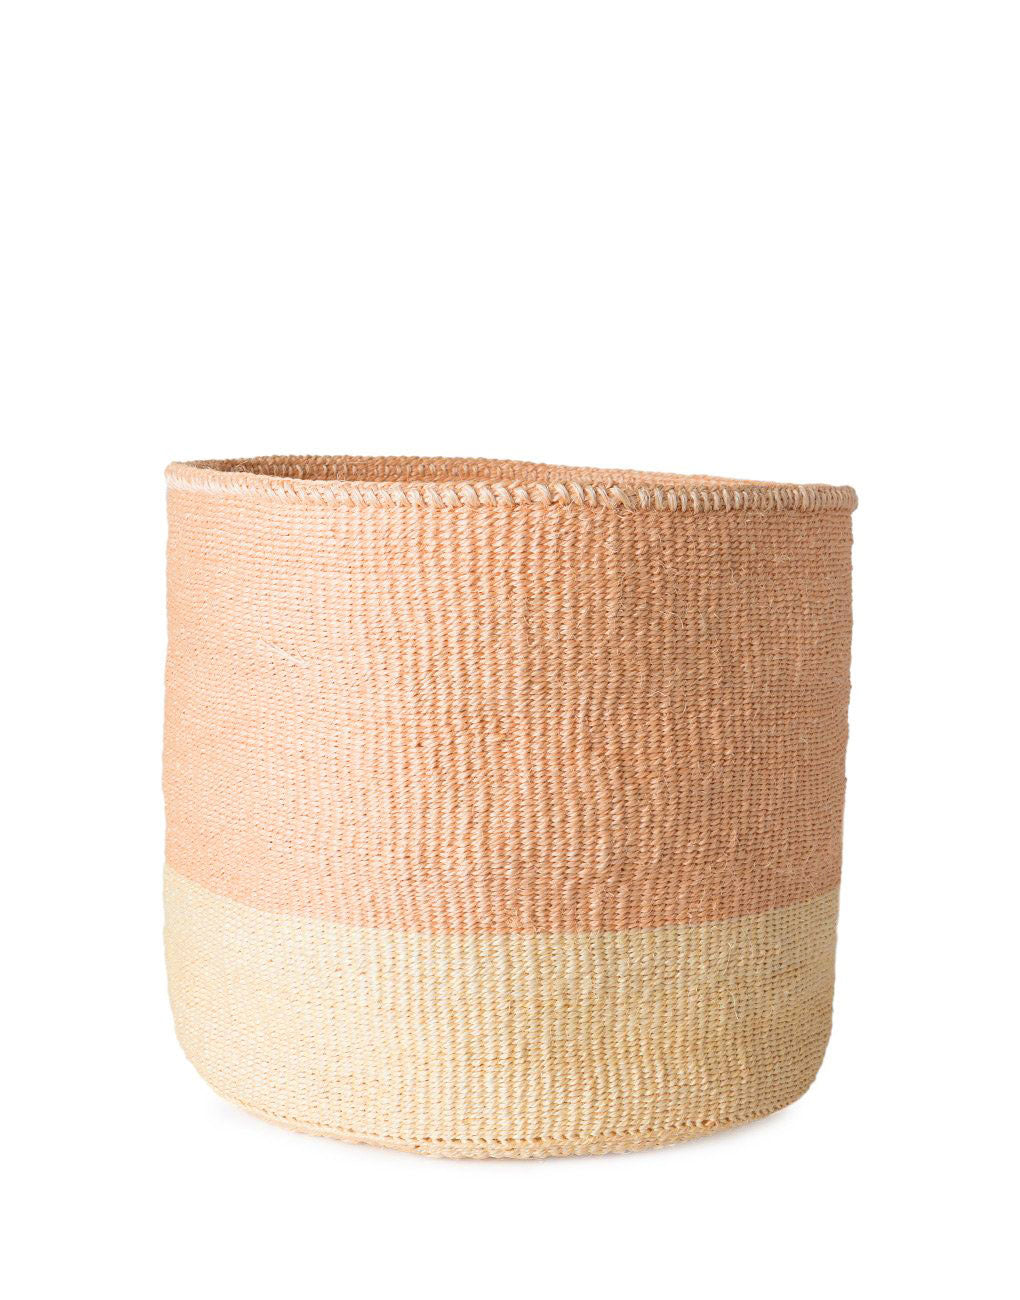 Colorblock Sisal Basket - White 11 | The Little Market